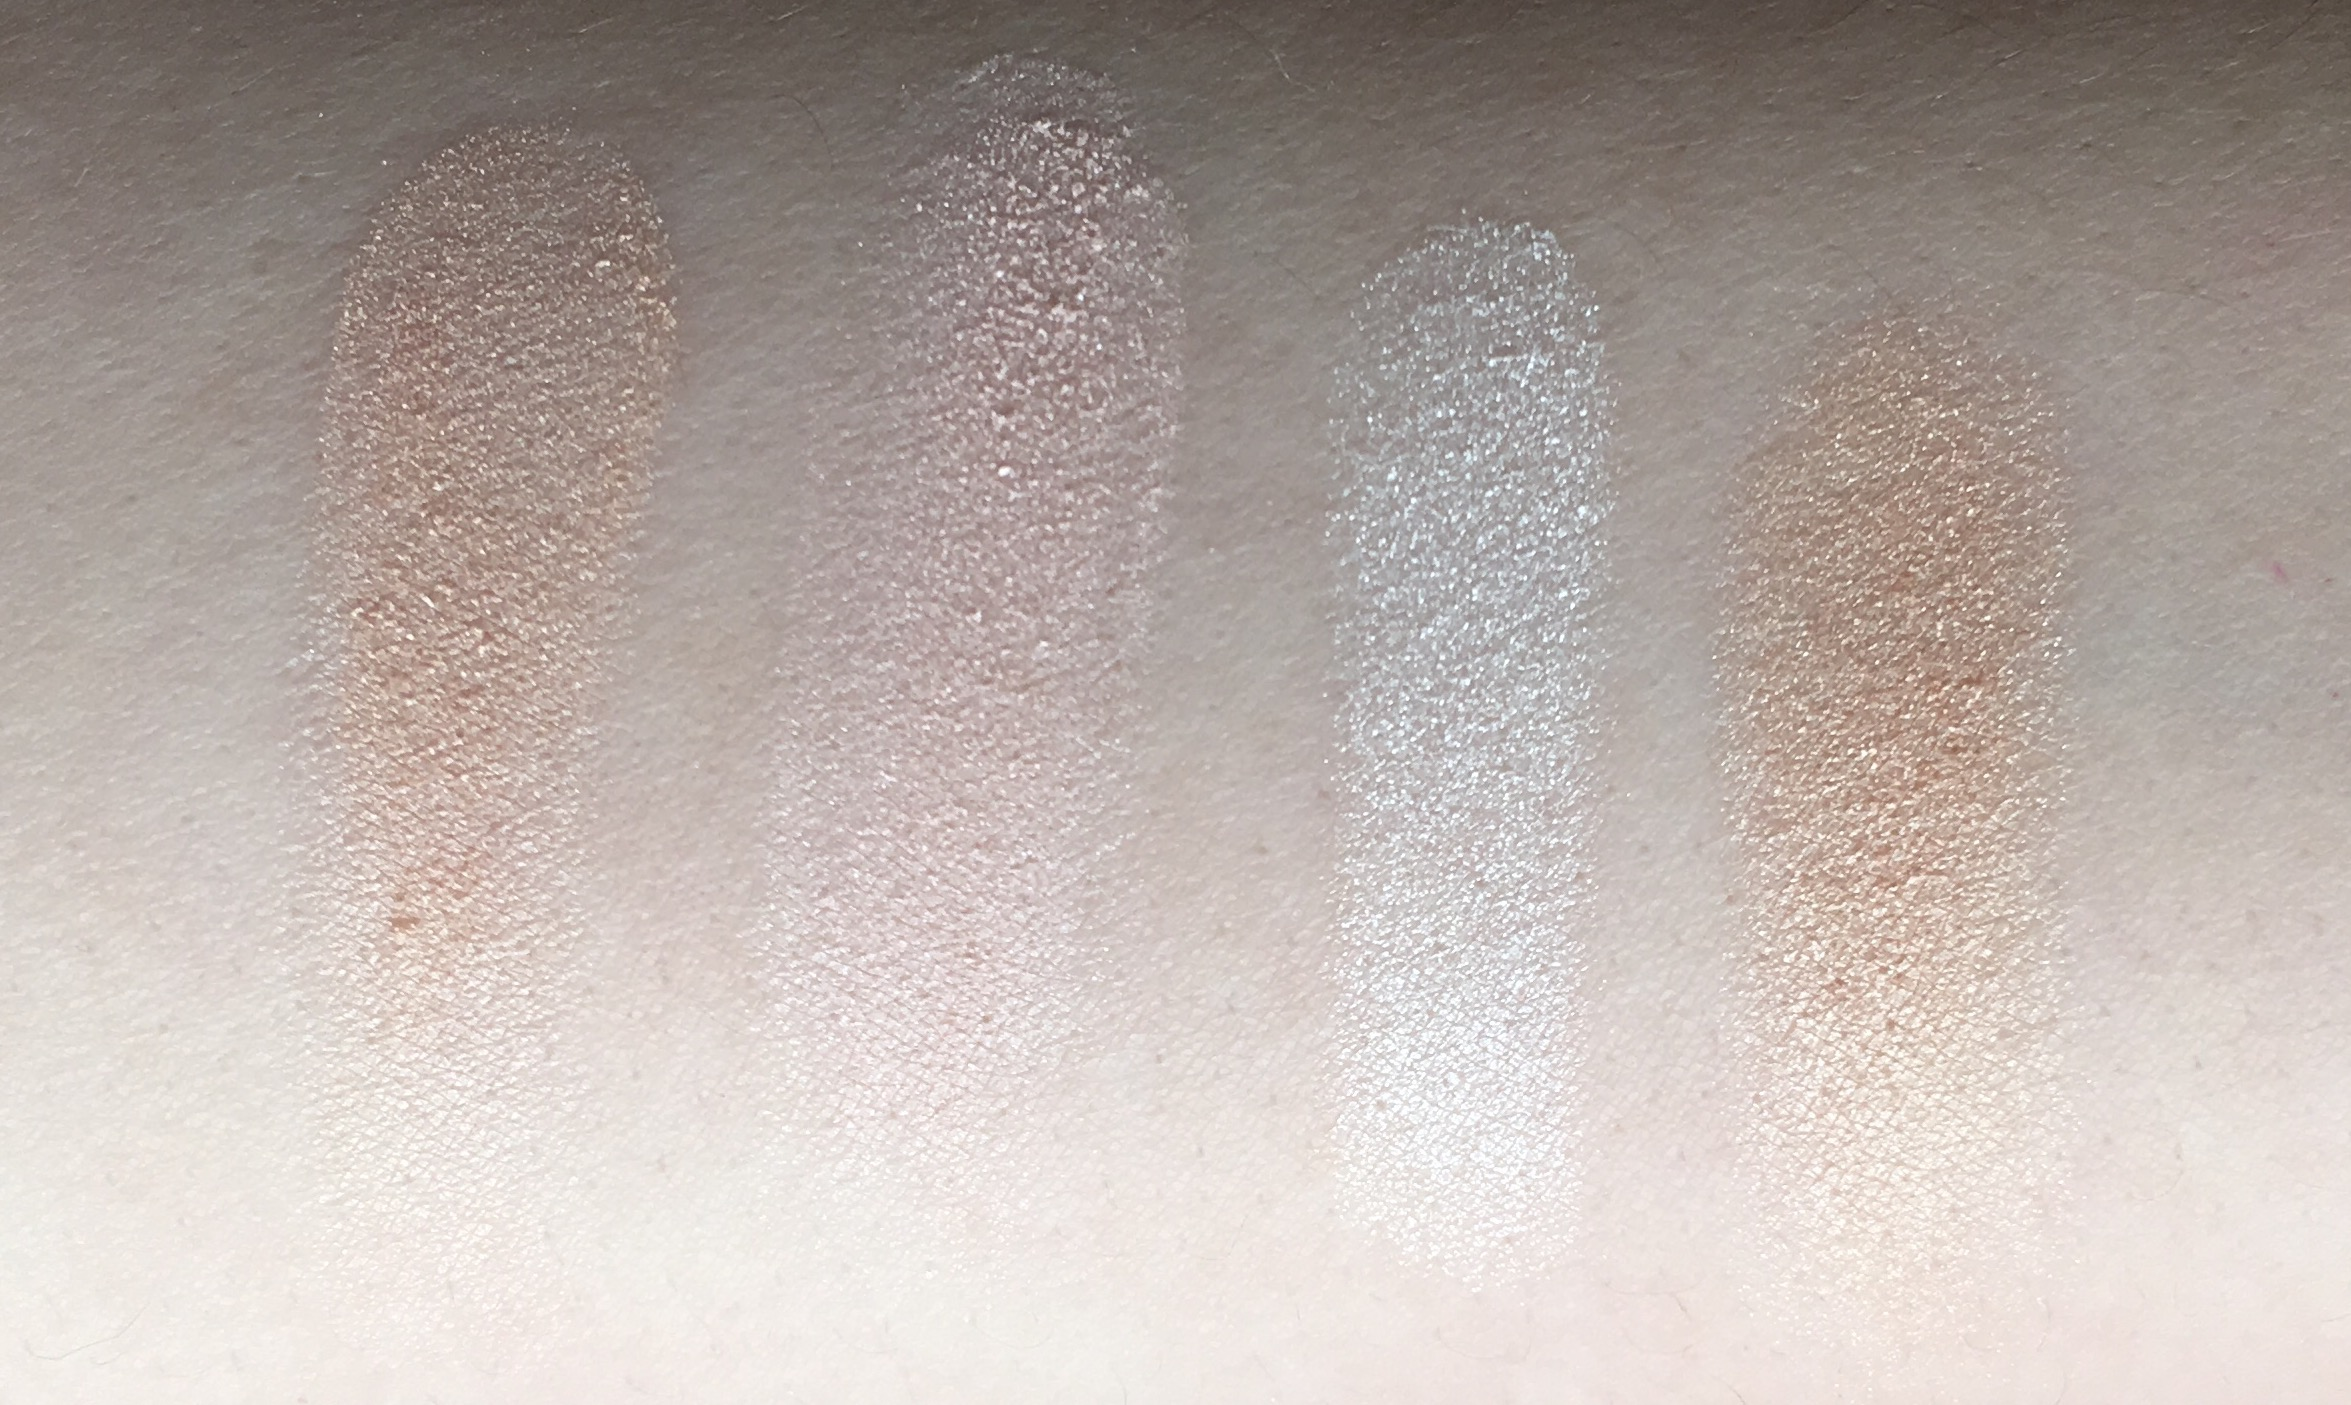 L-R: Kevyn Aucoin Candlelight, Hourglass Incandescent Light, Becca Pearl Pressed, Charlotte Tilbury Filmstar Bronze & Glow